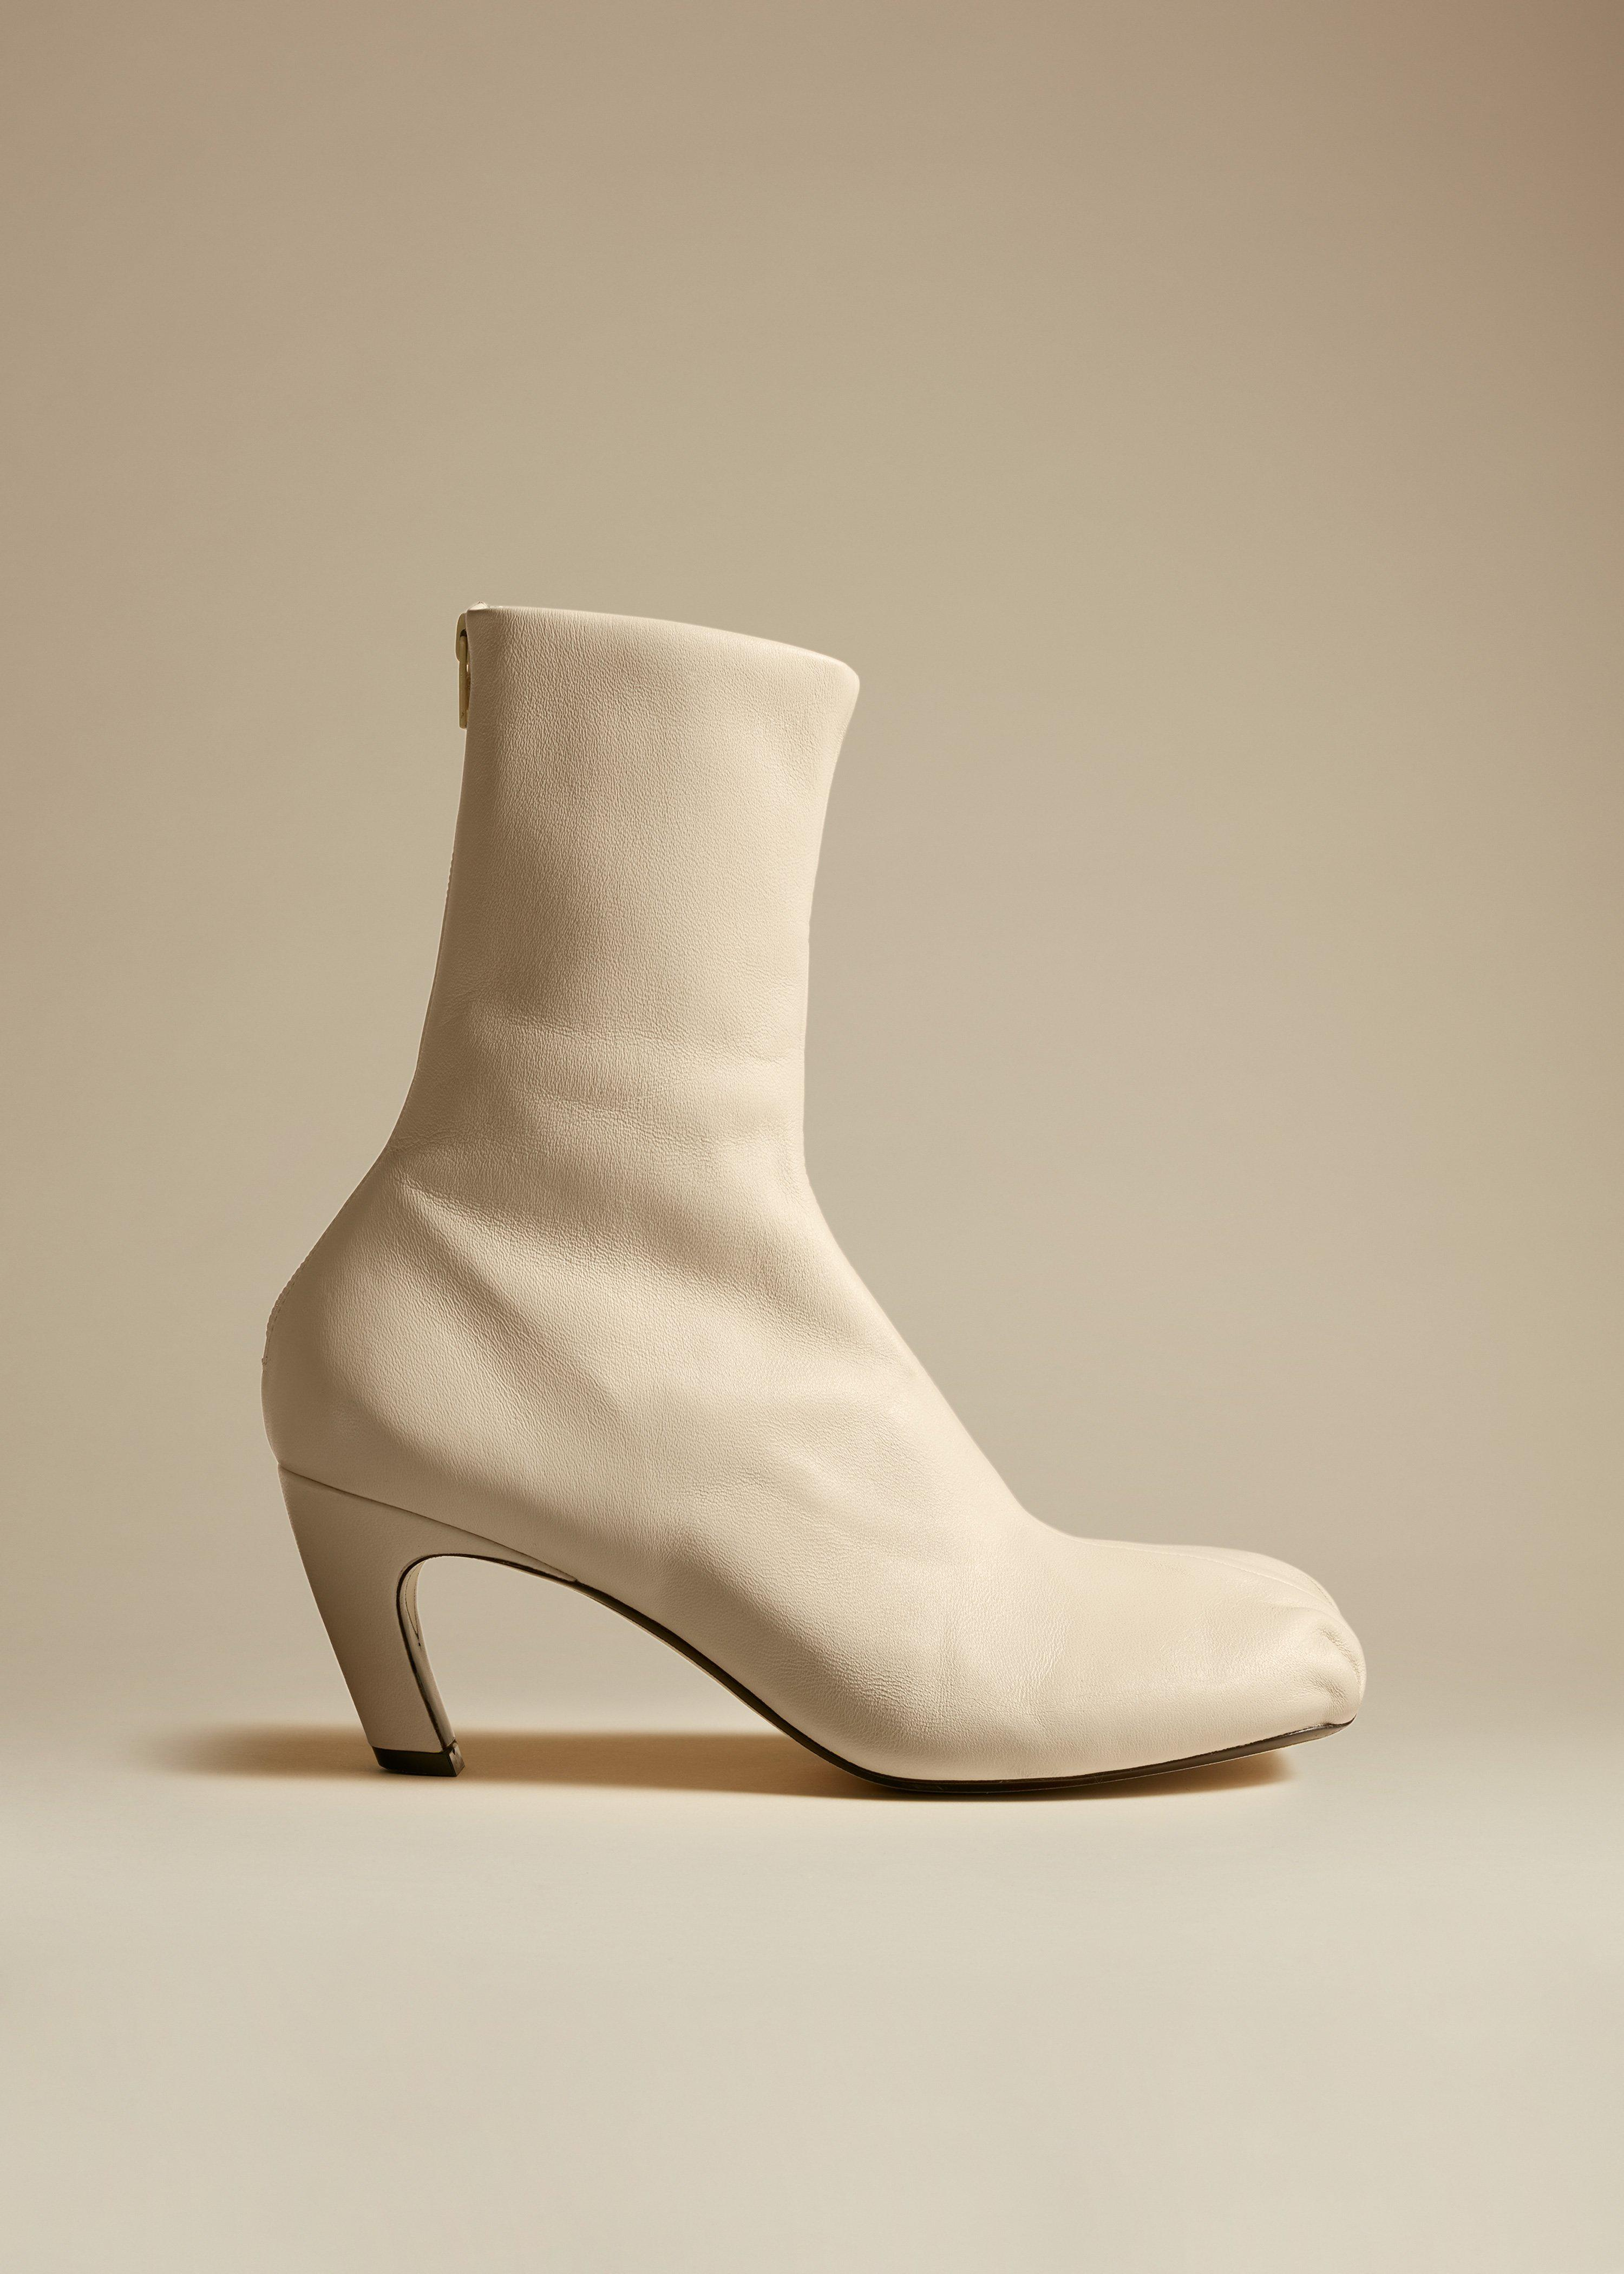 The Normandy Boot in Cream Leather